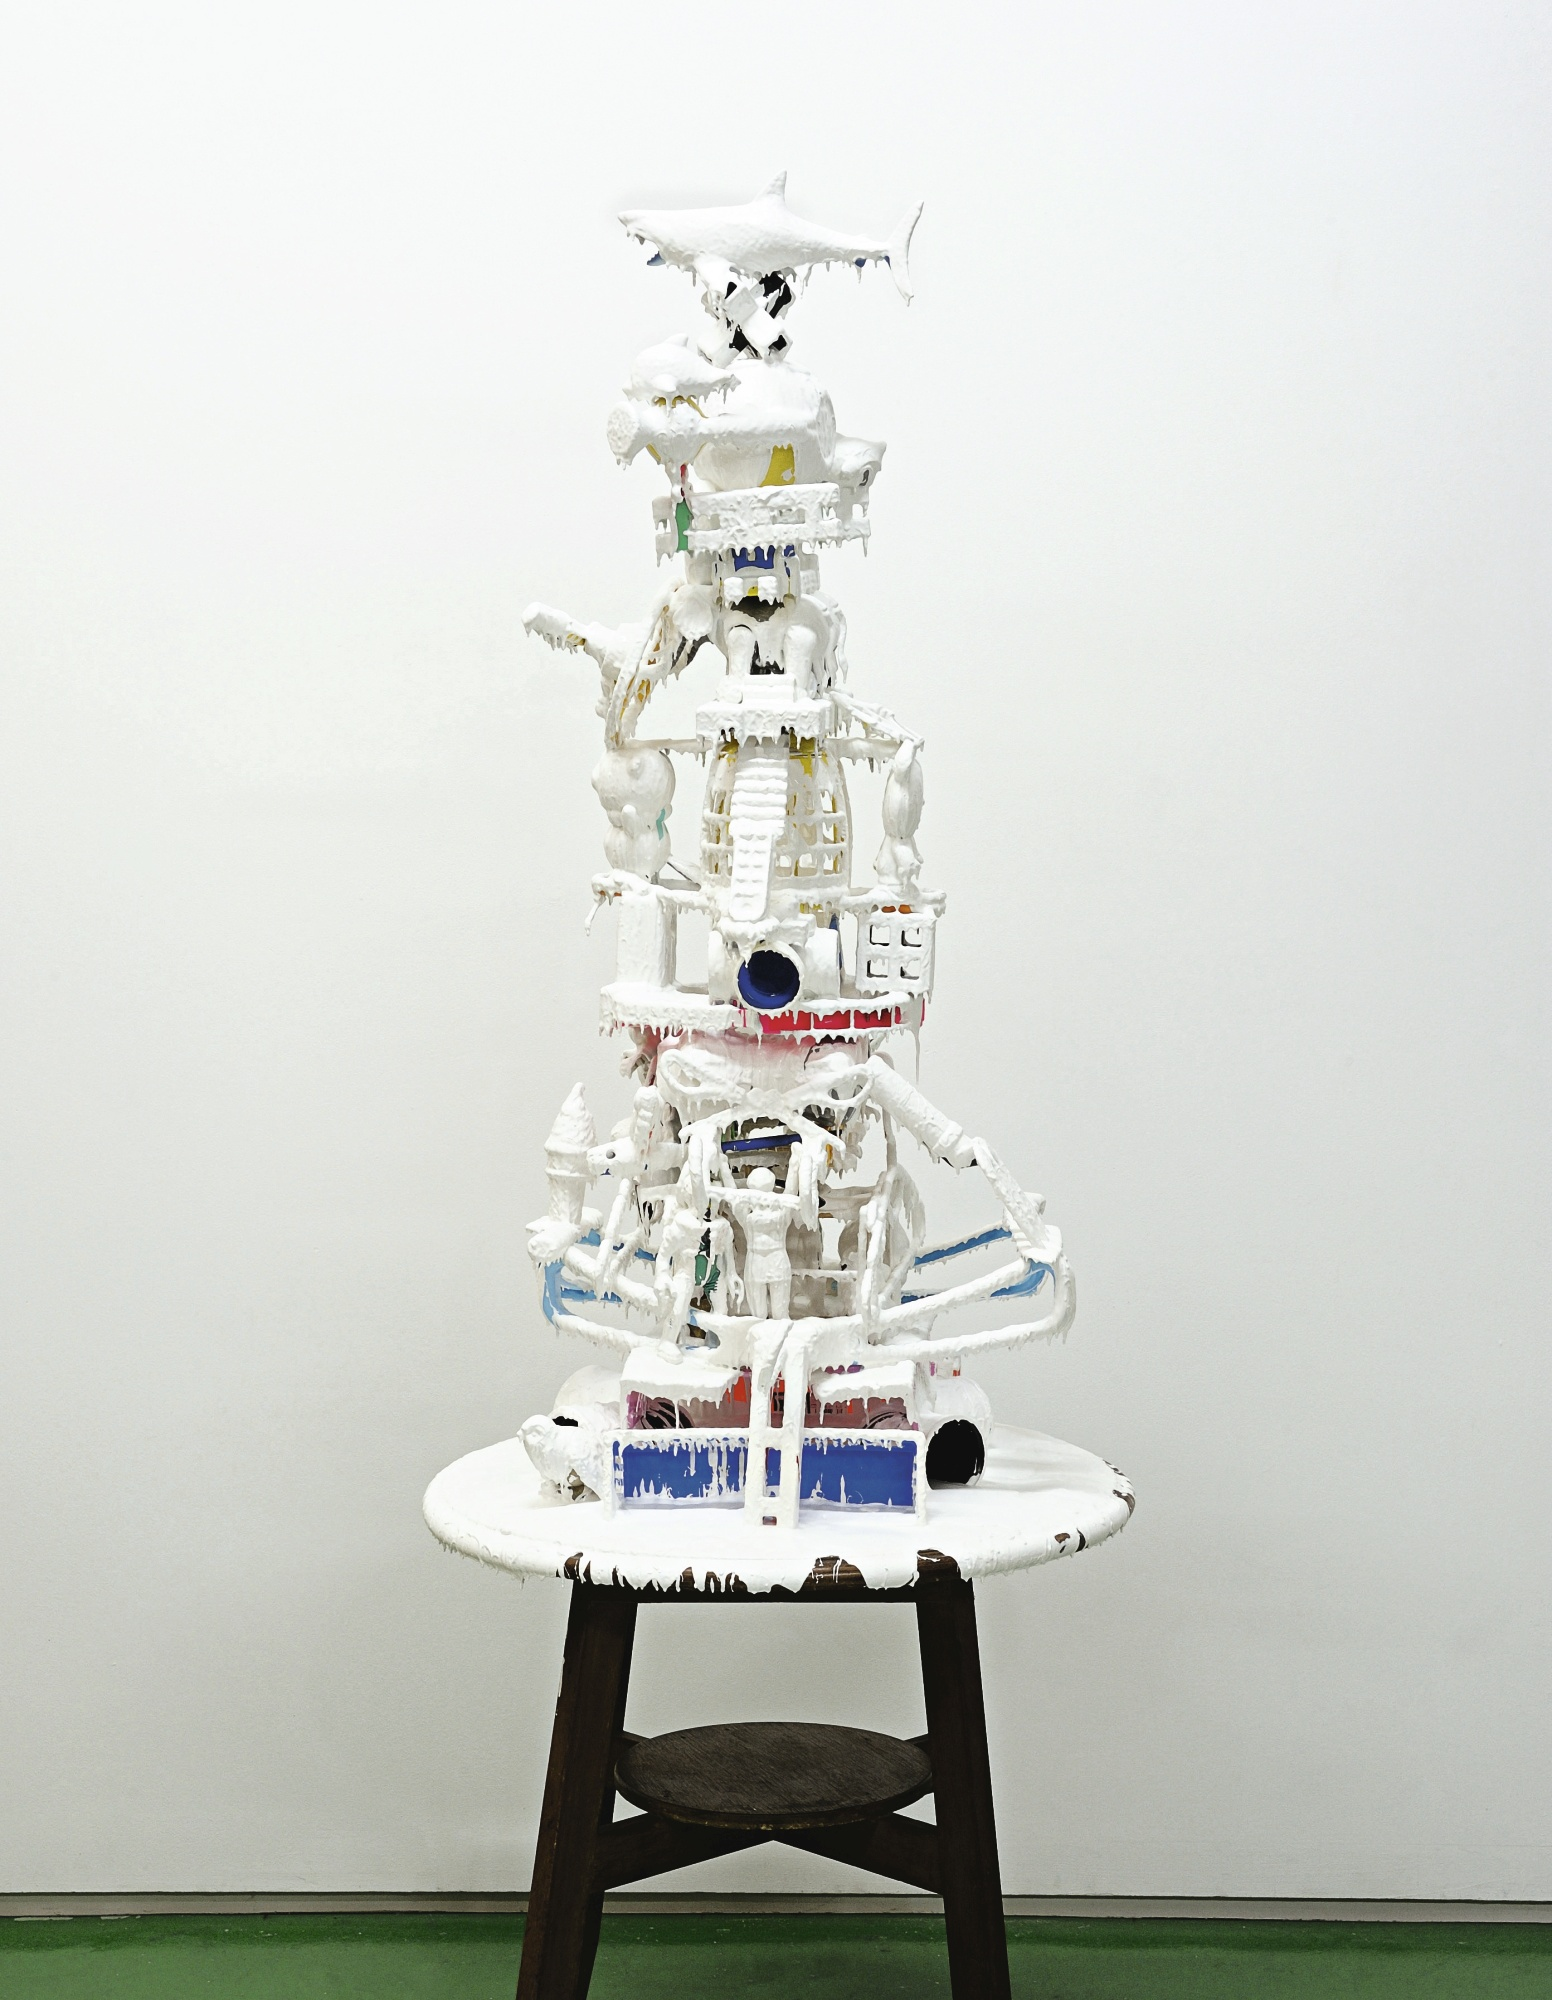 Teppei Kaneuji-White Discharge (Built-Up Objects No.19)-2012